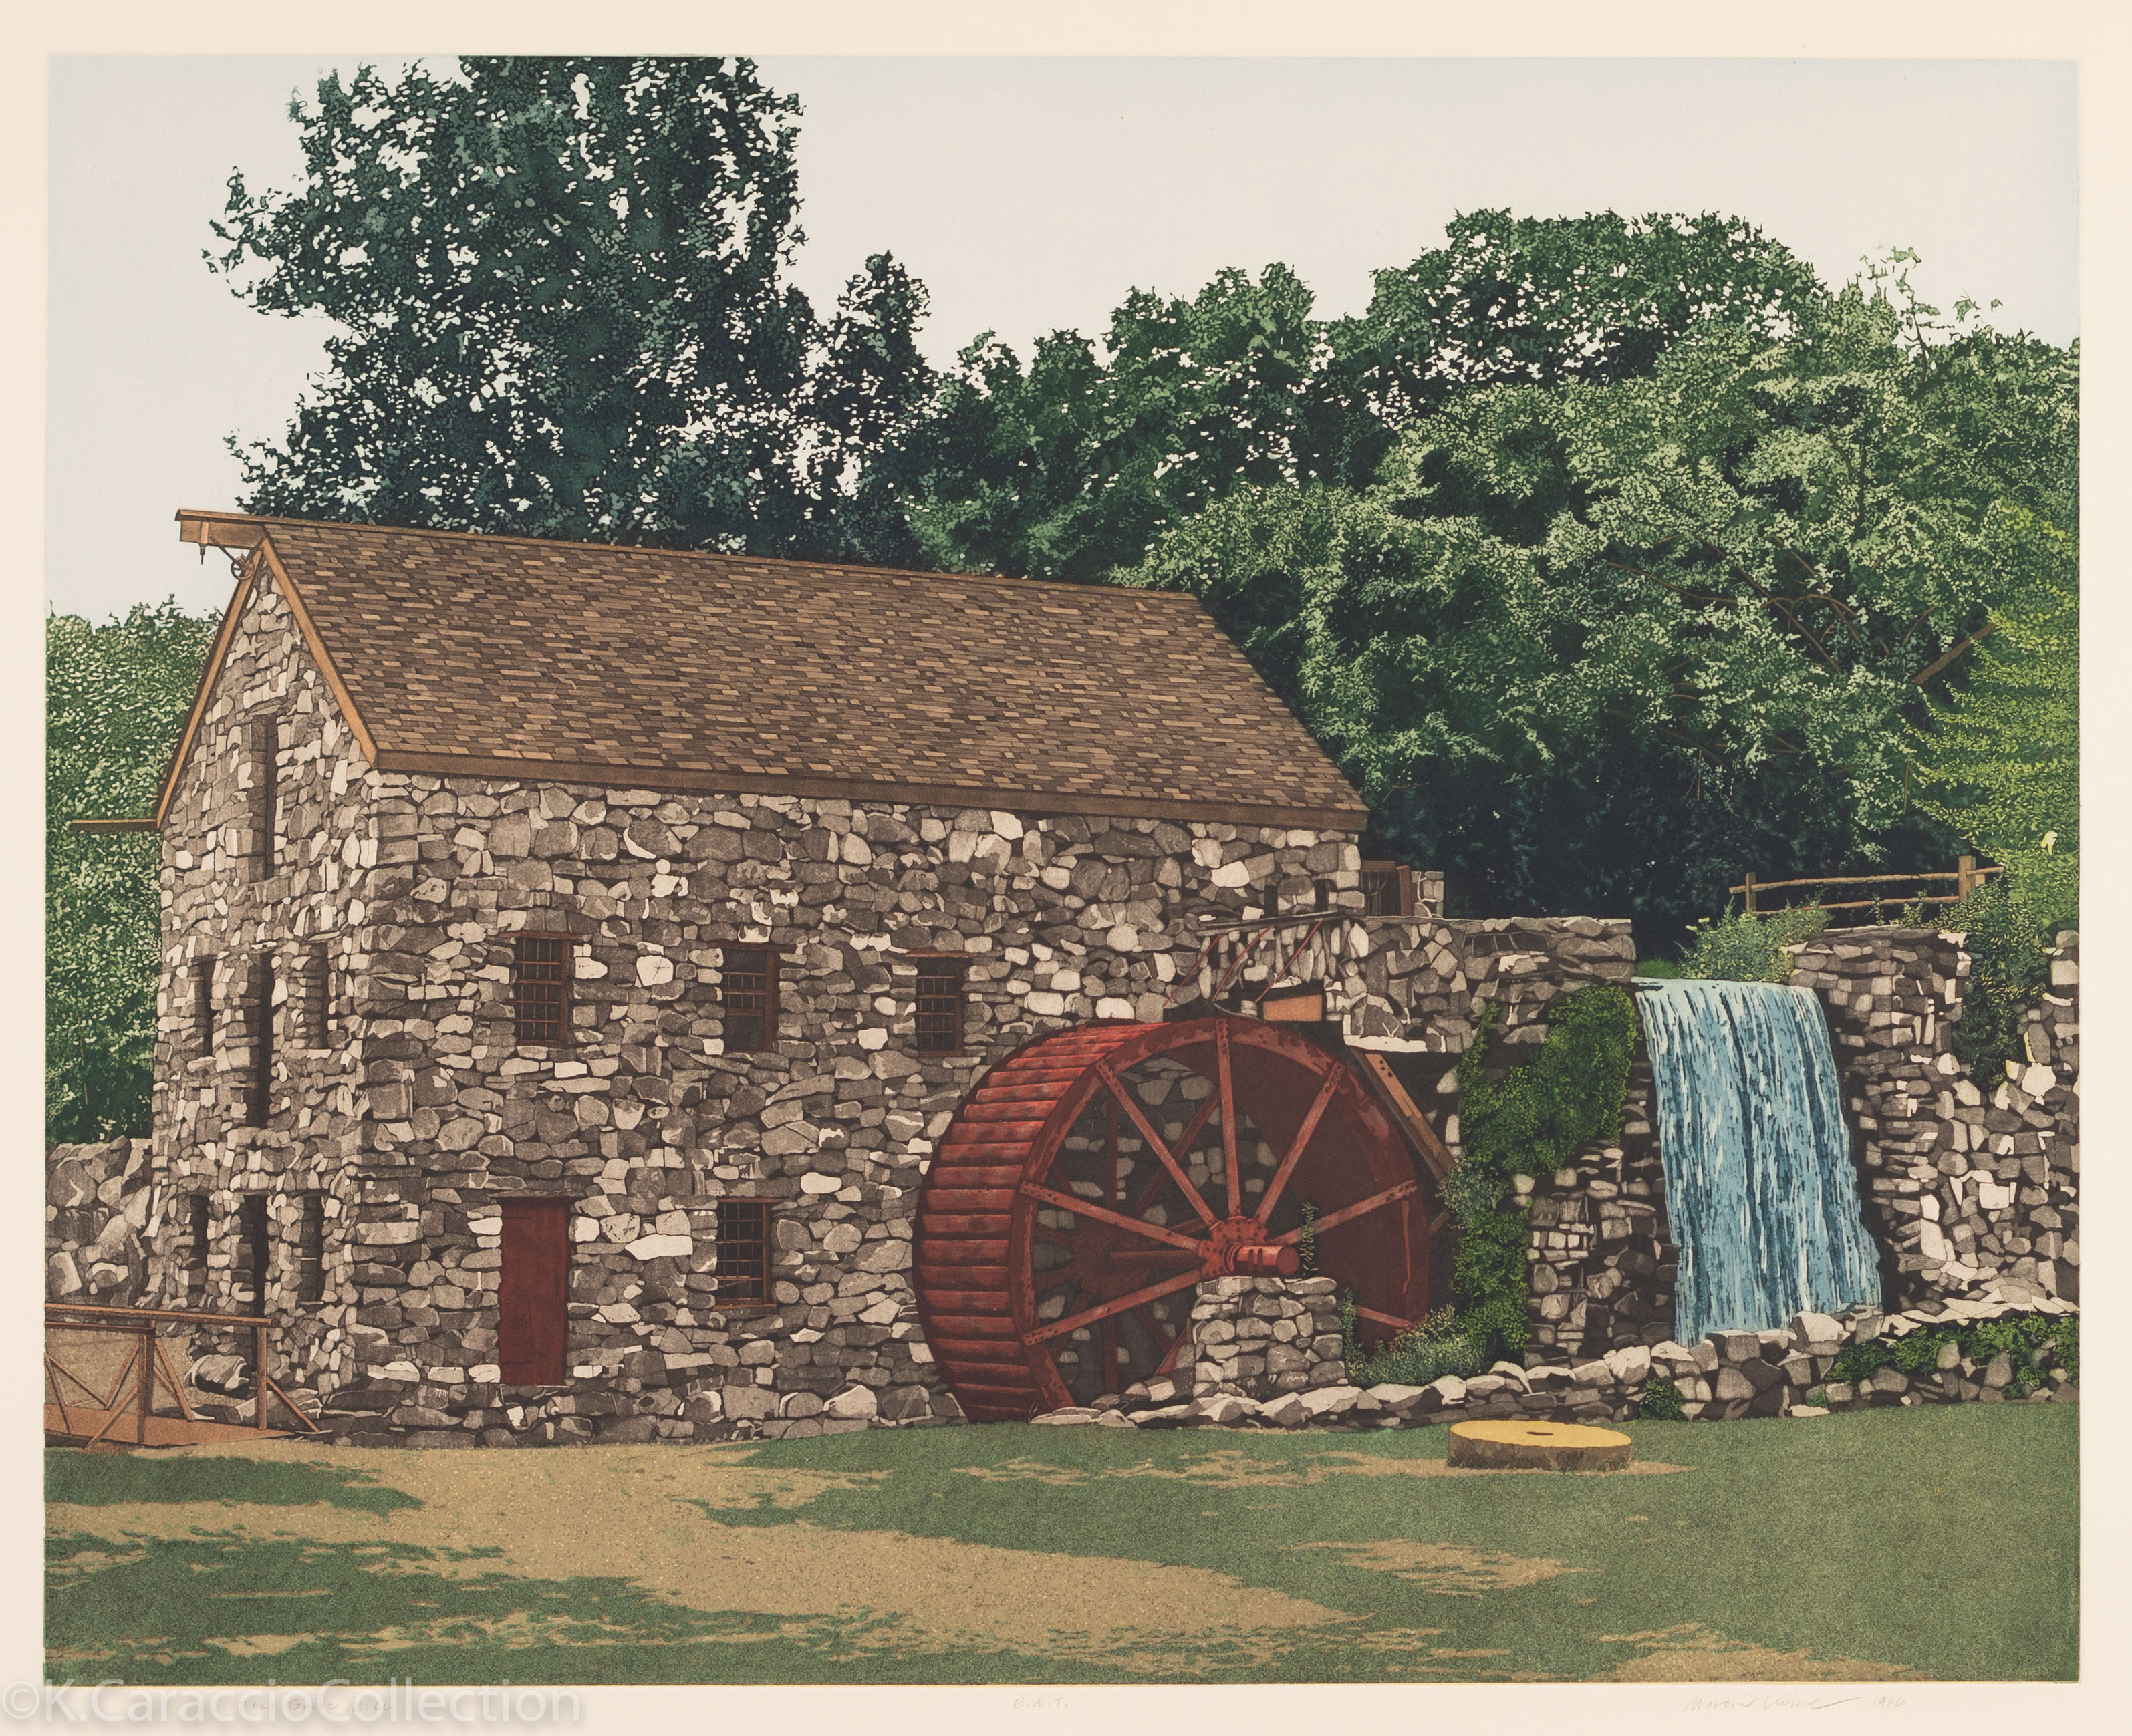 The Grist Mill, 1986